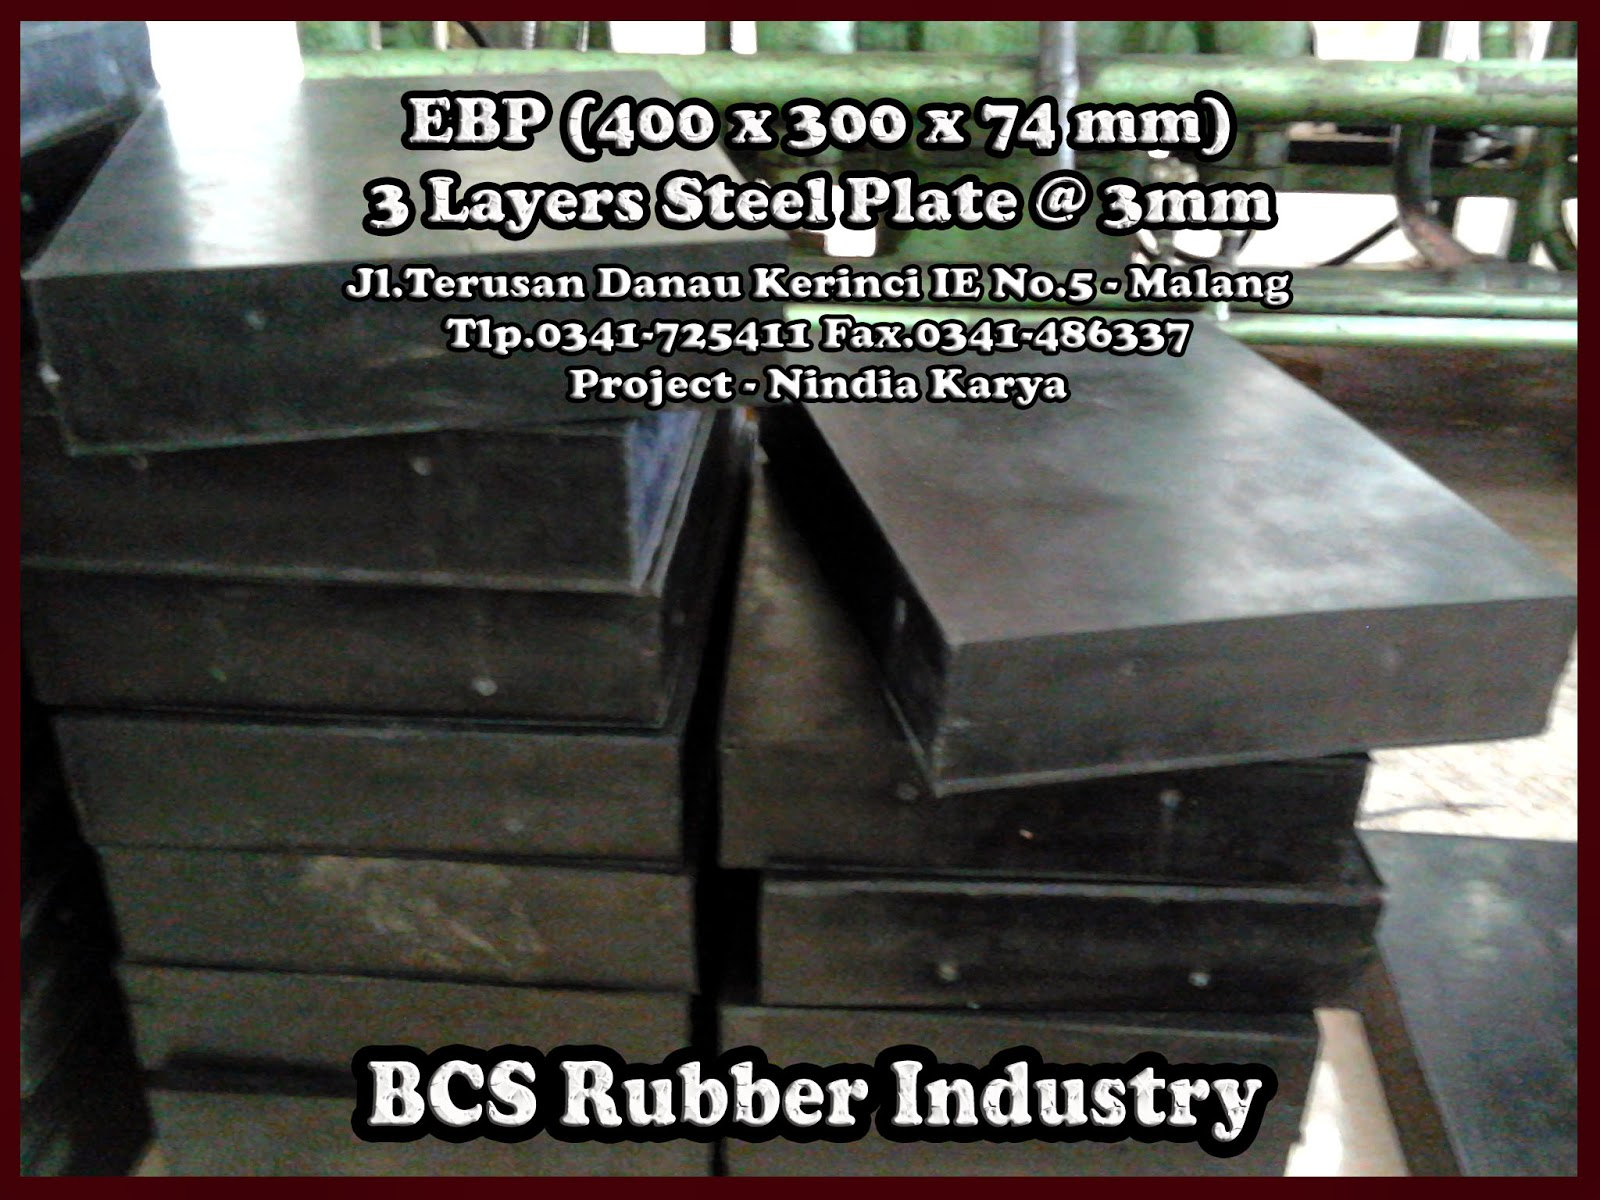 - Product Elastomer Bearing Pads - Steel Plate (Laminated)